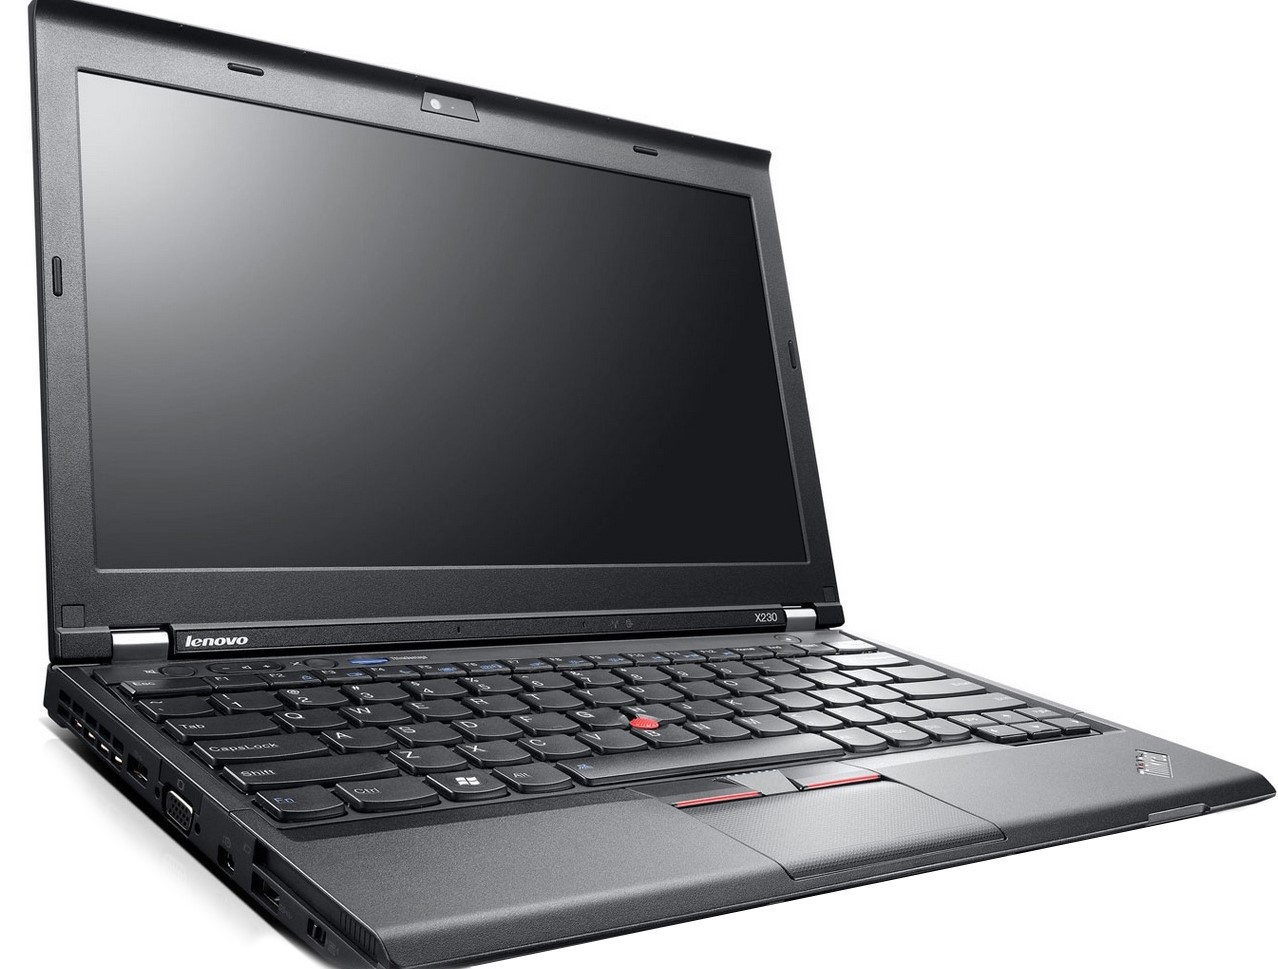 Thinkpad X230 / i5 2,6GHz / 8GB / 320GB HDD / WIN 10